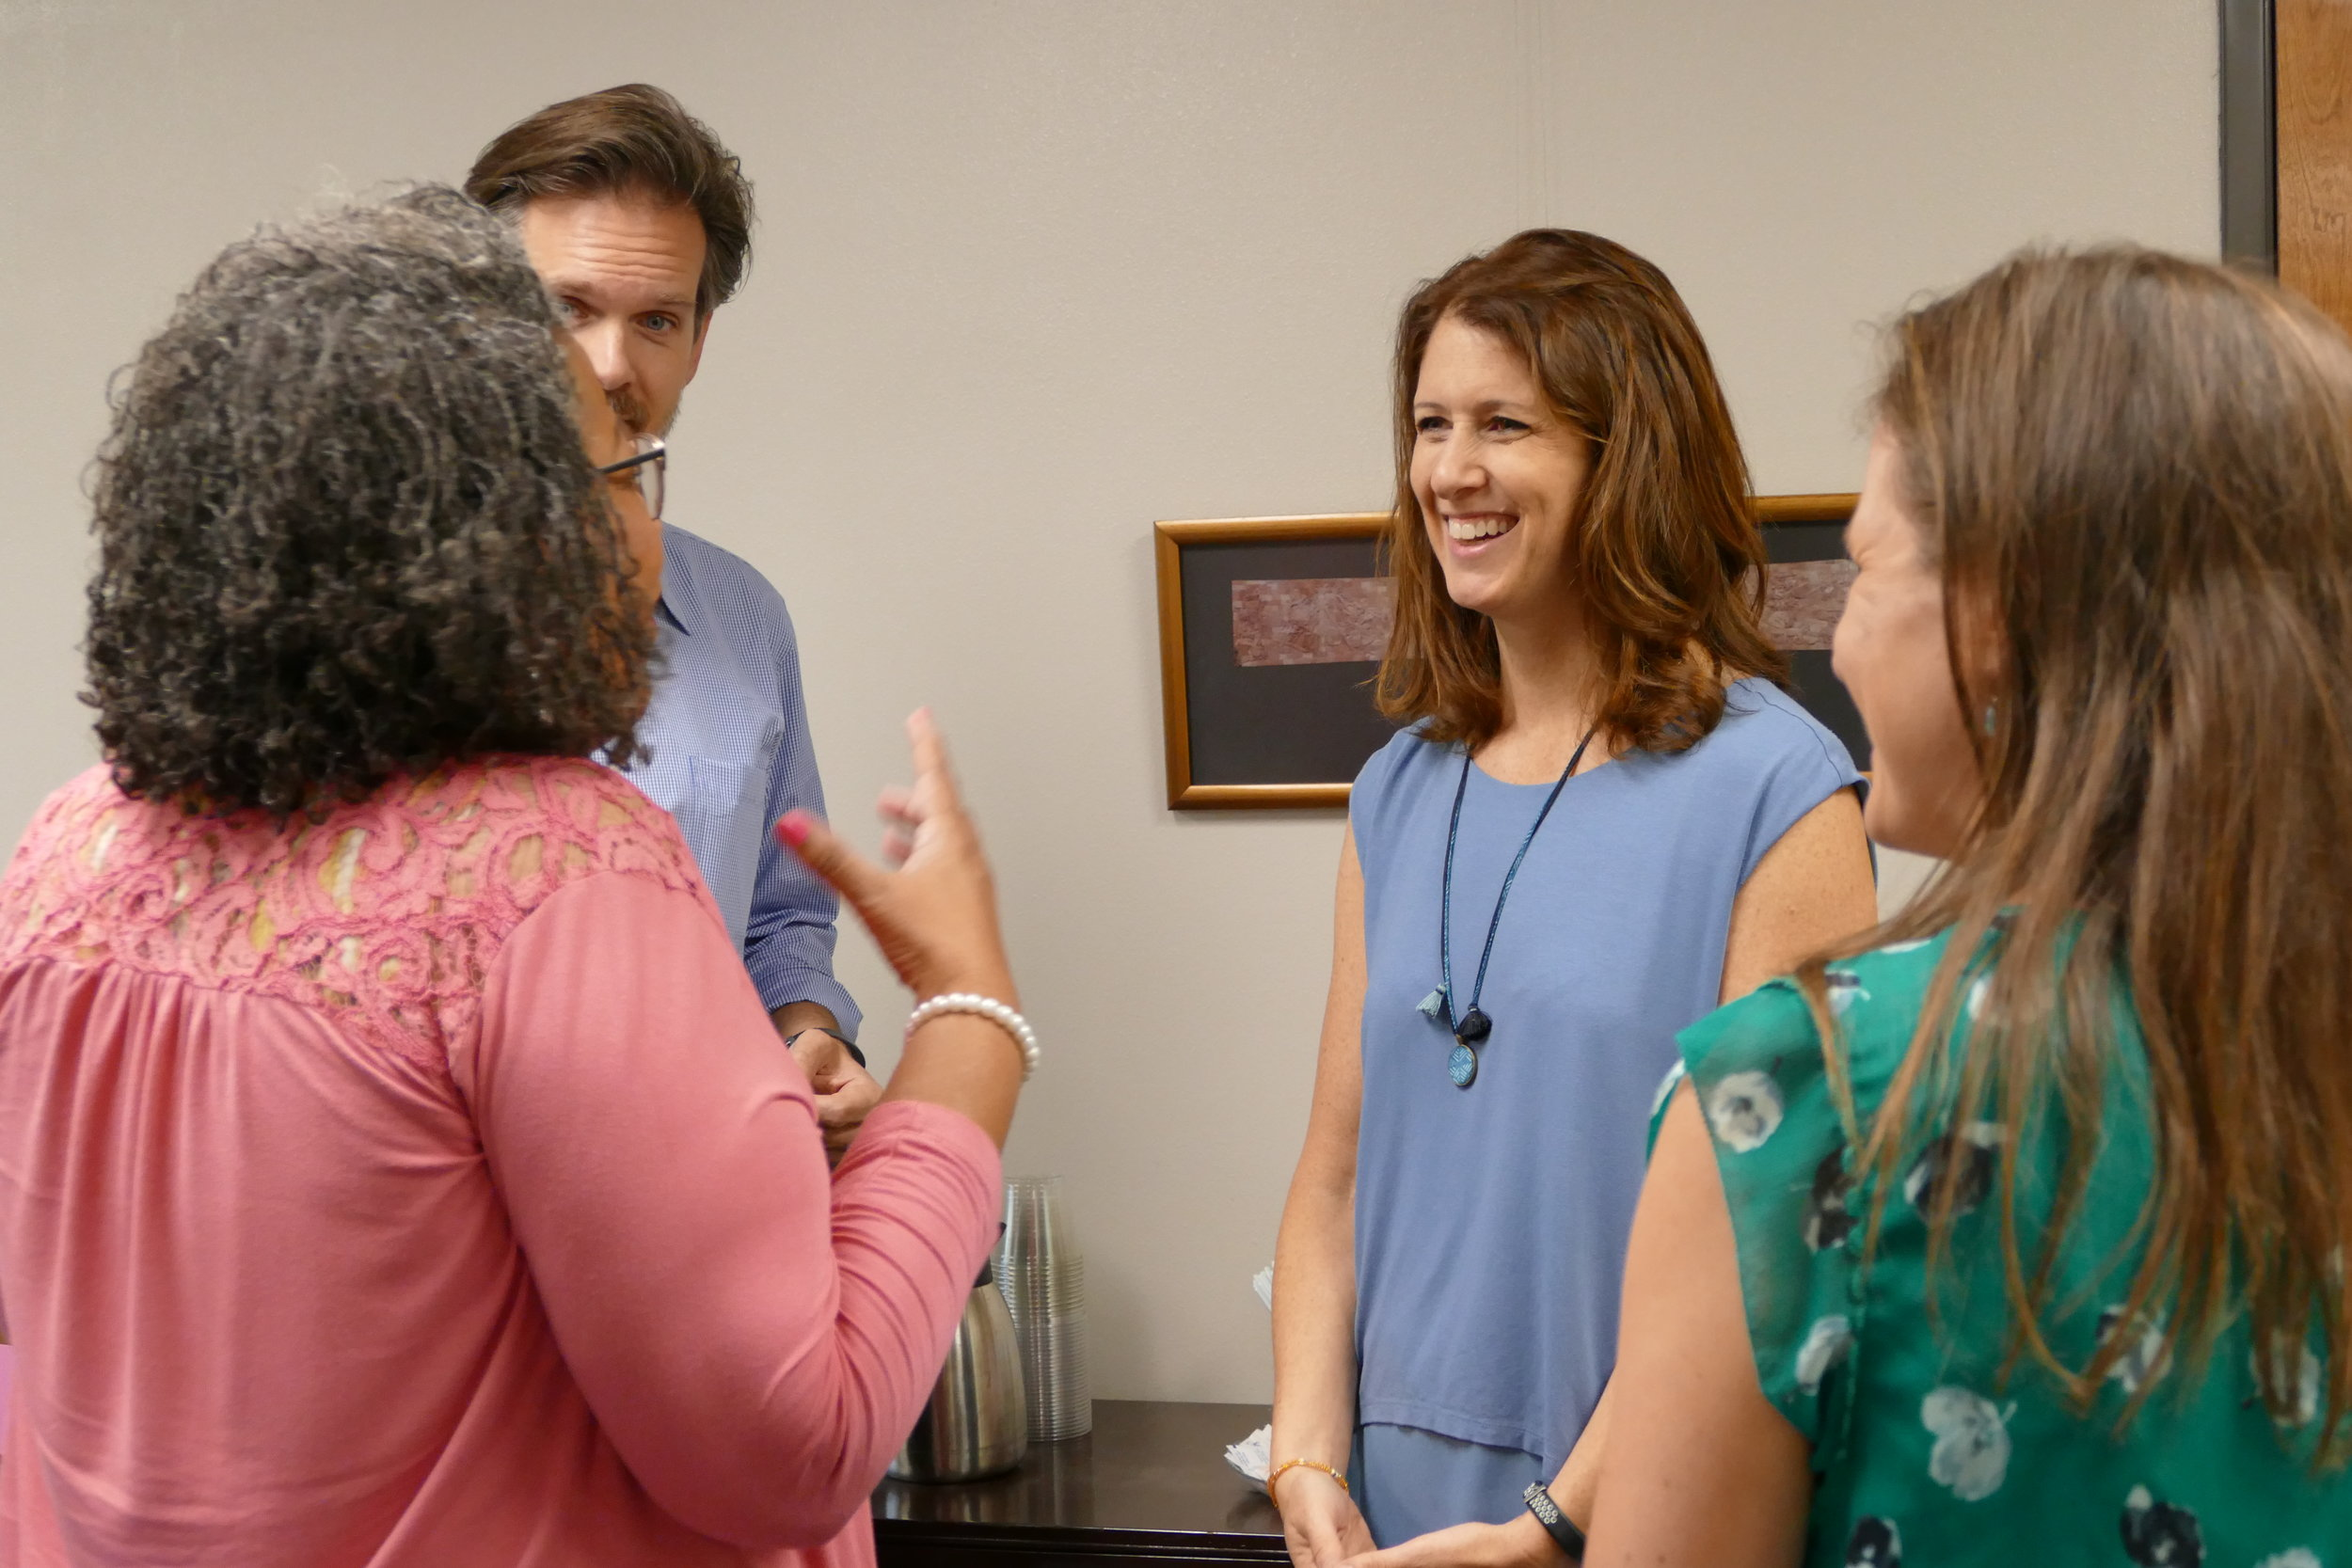 TIEC executive staff members Robin Lerner and Ryan Buck talking with program participants.